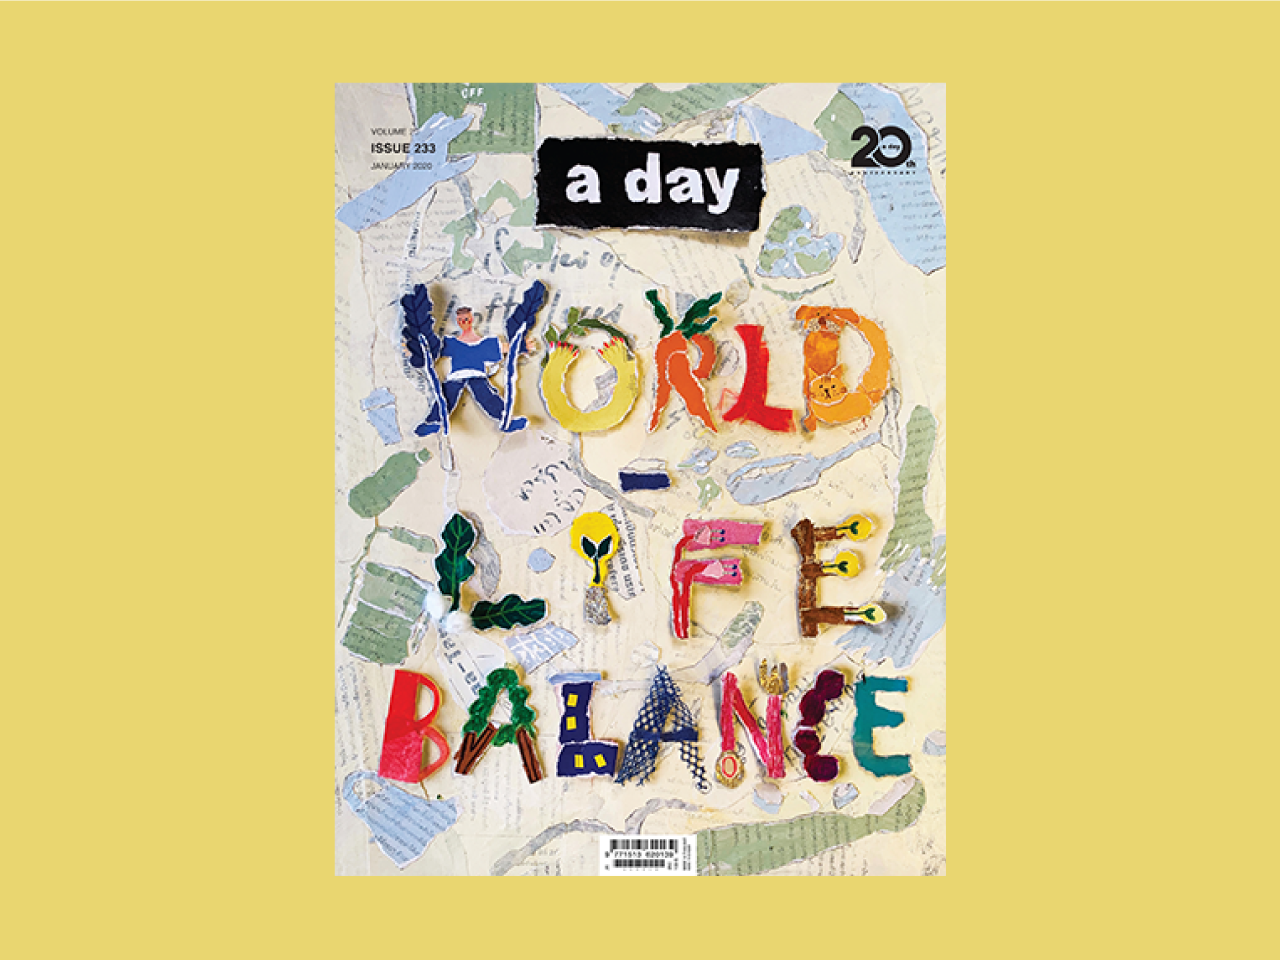 a day #233 World-Life Balance